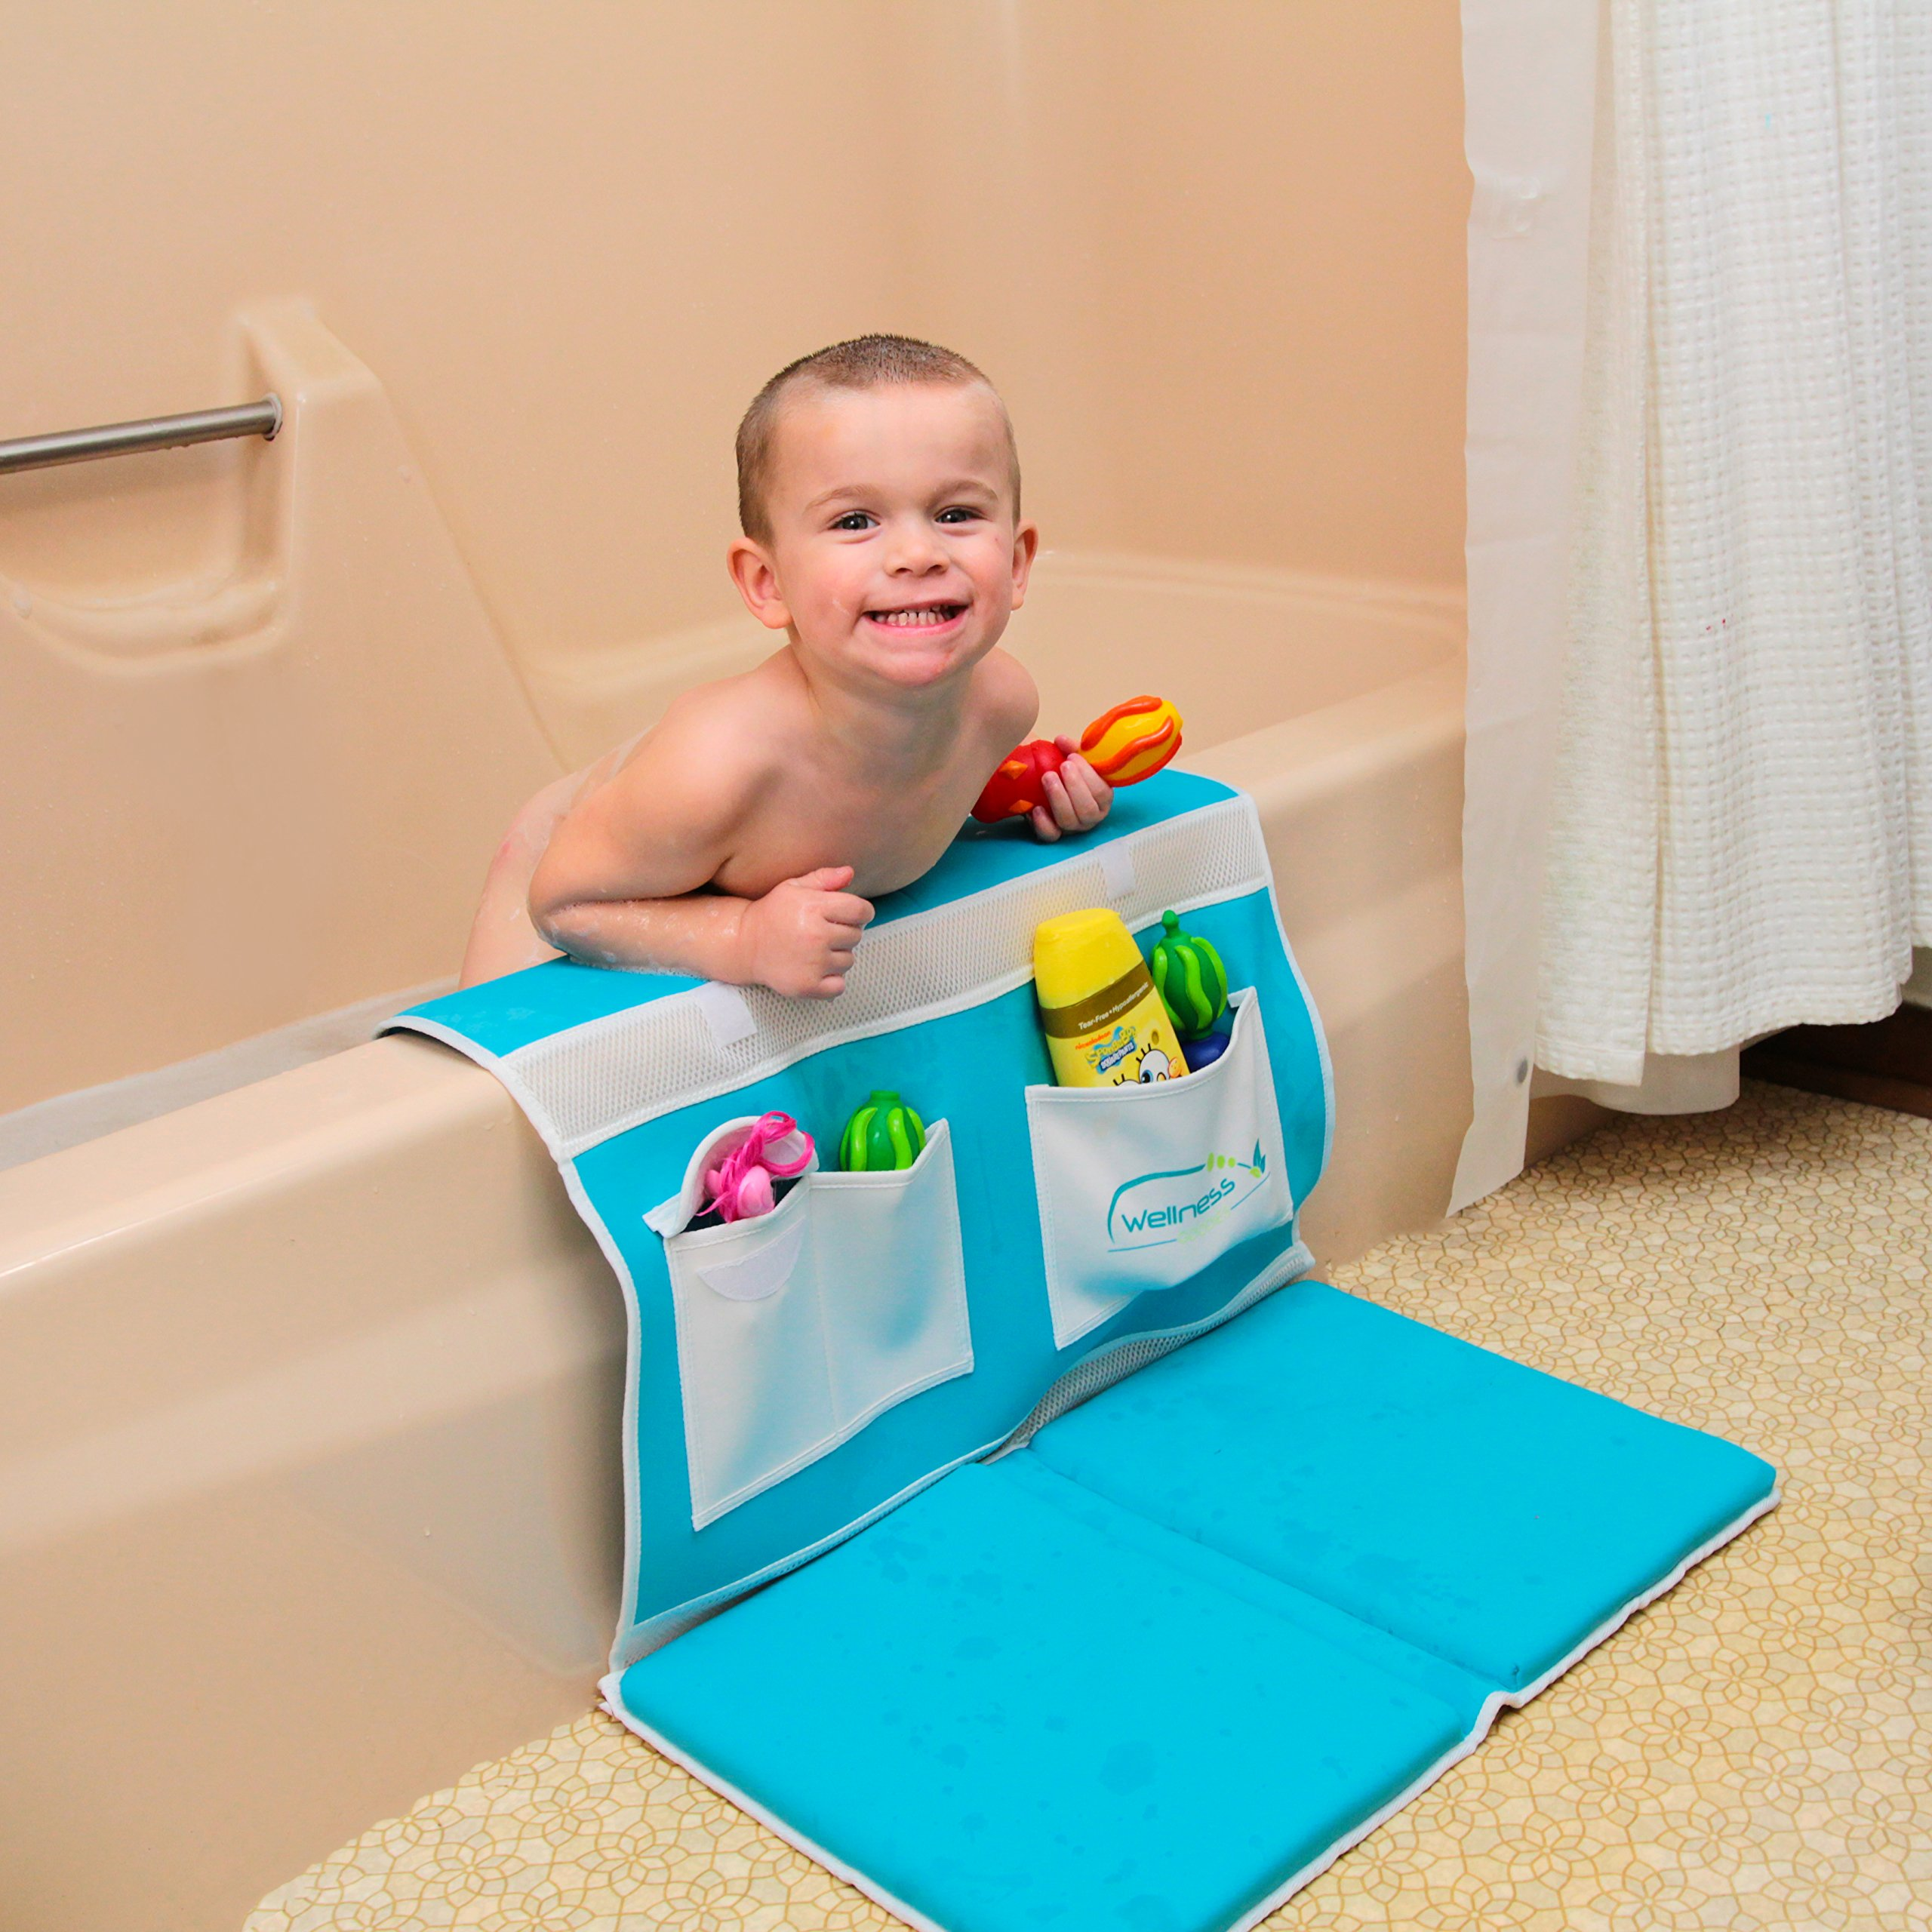 Wellness Goodies Baby Bath Kneeler and Elbow Pad -Deluxe Safety Bath Kneeler Designed to Ease Knee and Elbow Pain -Comfort Pad, Non Slip, Comfort Padding, Foldable & Washable -Perfect Baby Shower Gift